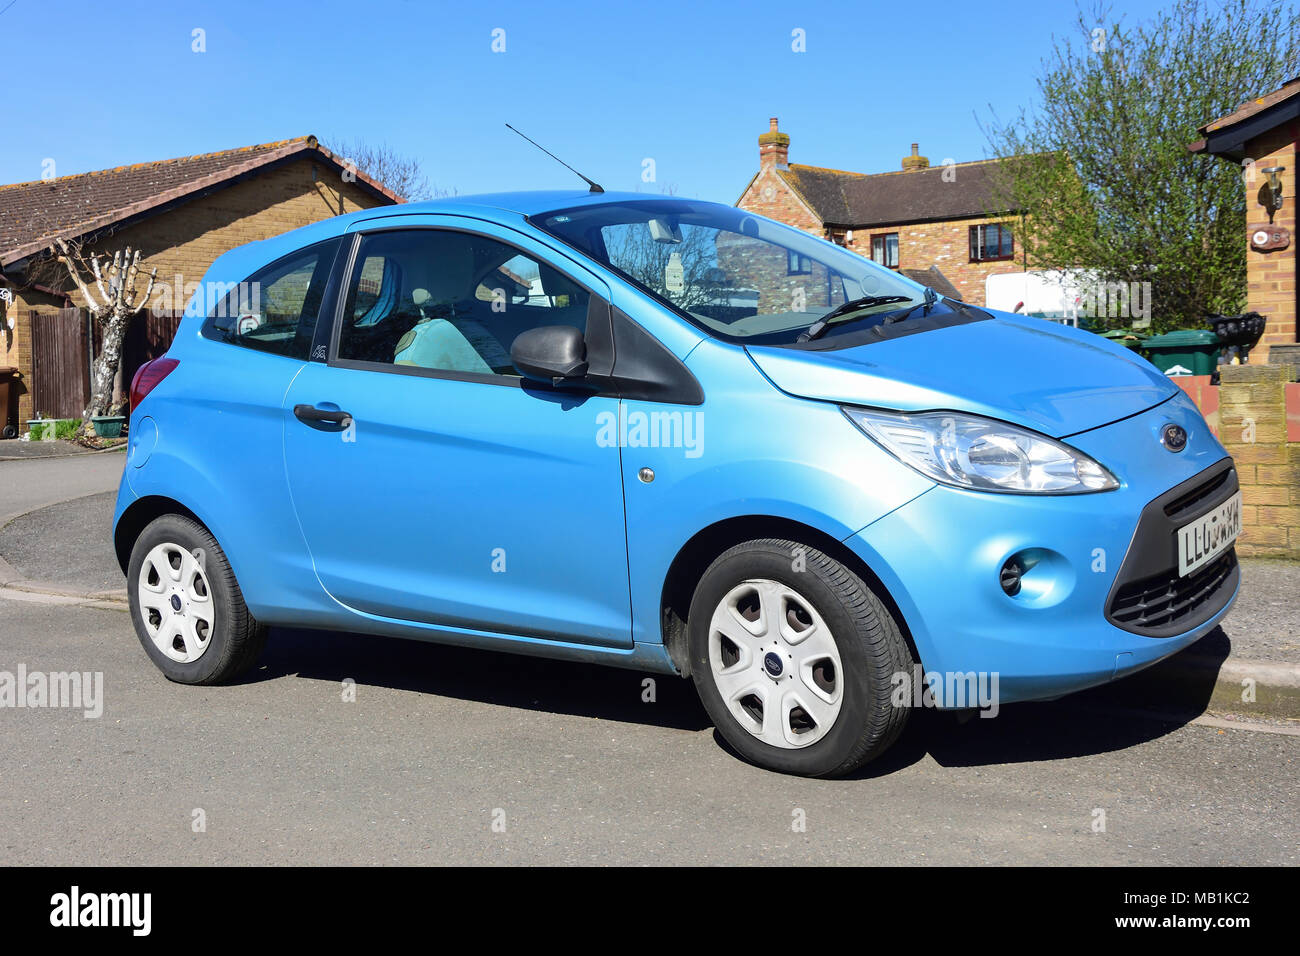 Light blue Ford Ka automobile parked on road, Stanwell Moor, Surrey, England, United Kingdom - Stock Image